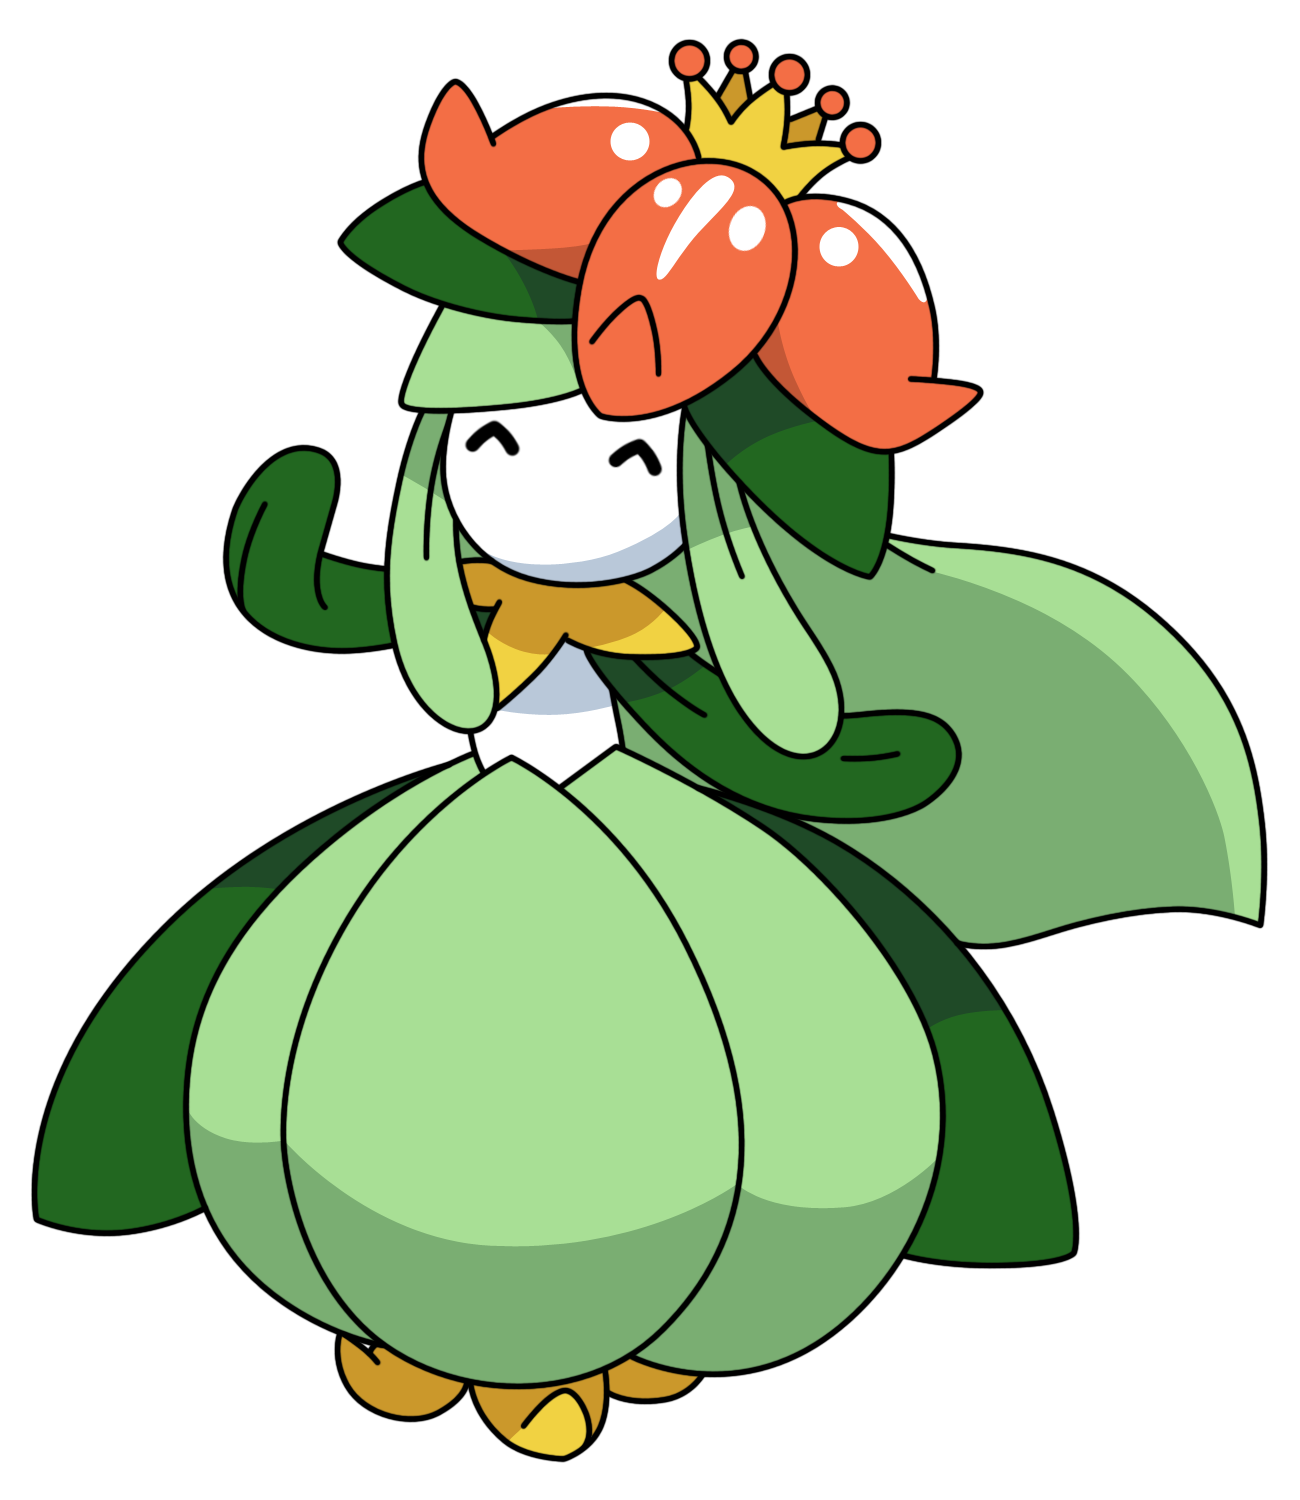 Lilligant by Kizarin on DeviantArt